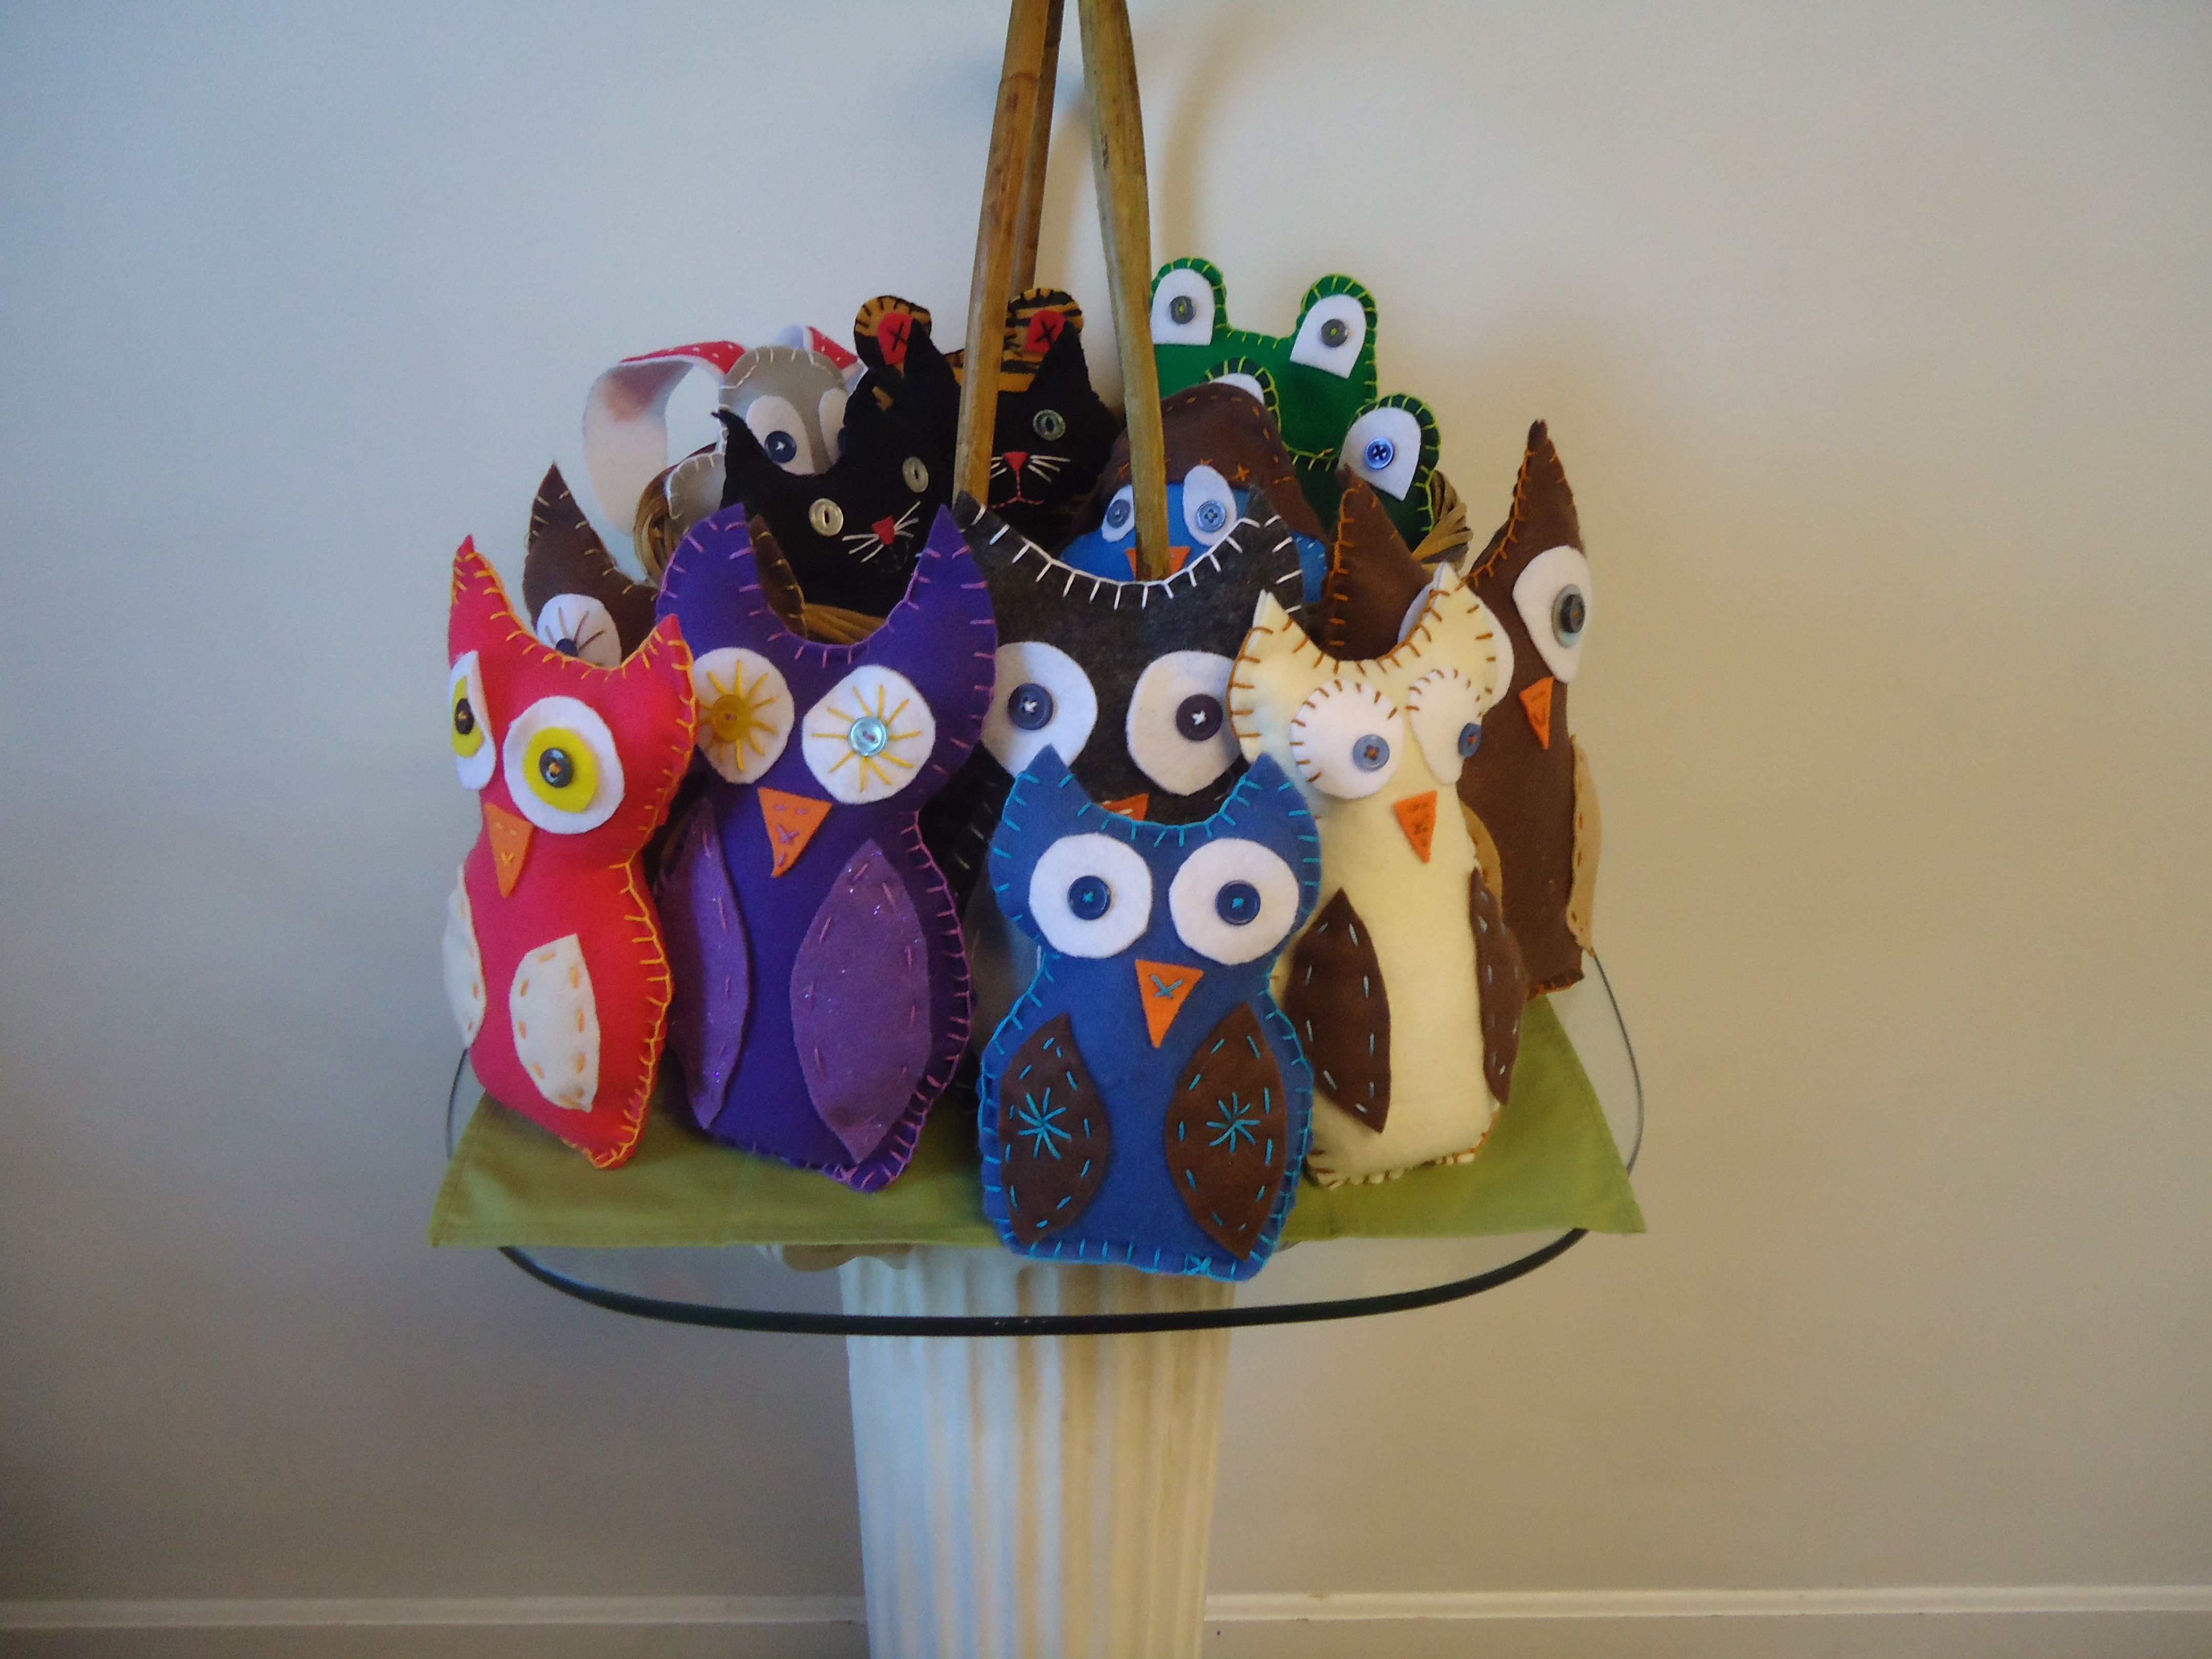 Felt owls and other critters